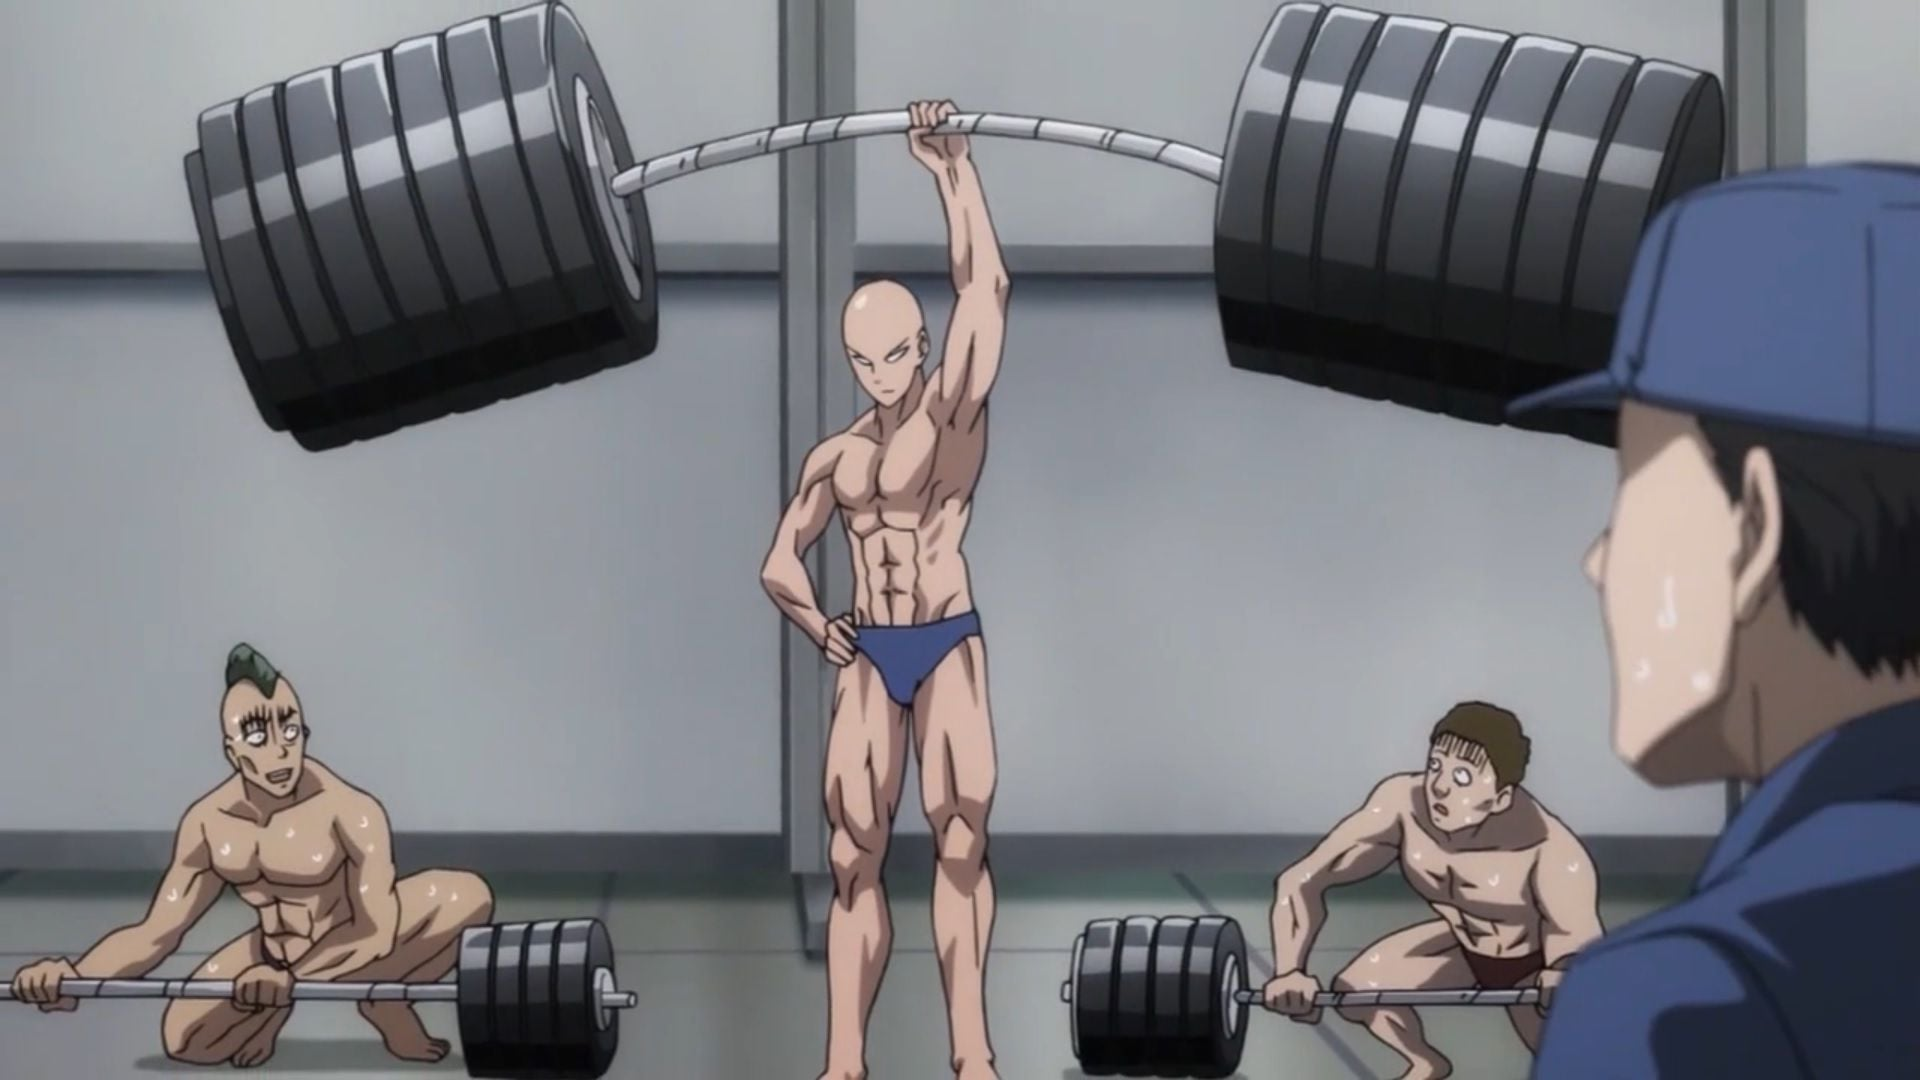 Gym Saitama wallpaper | HD Image #1